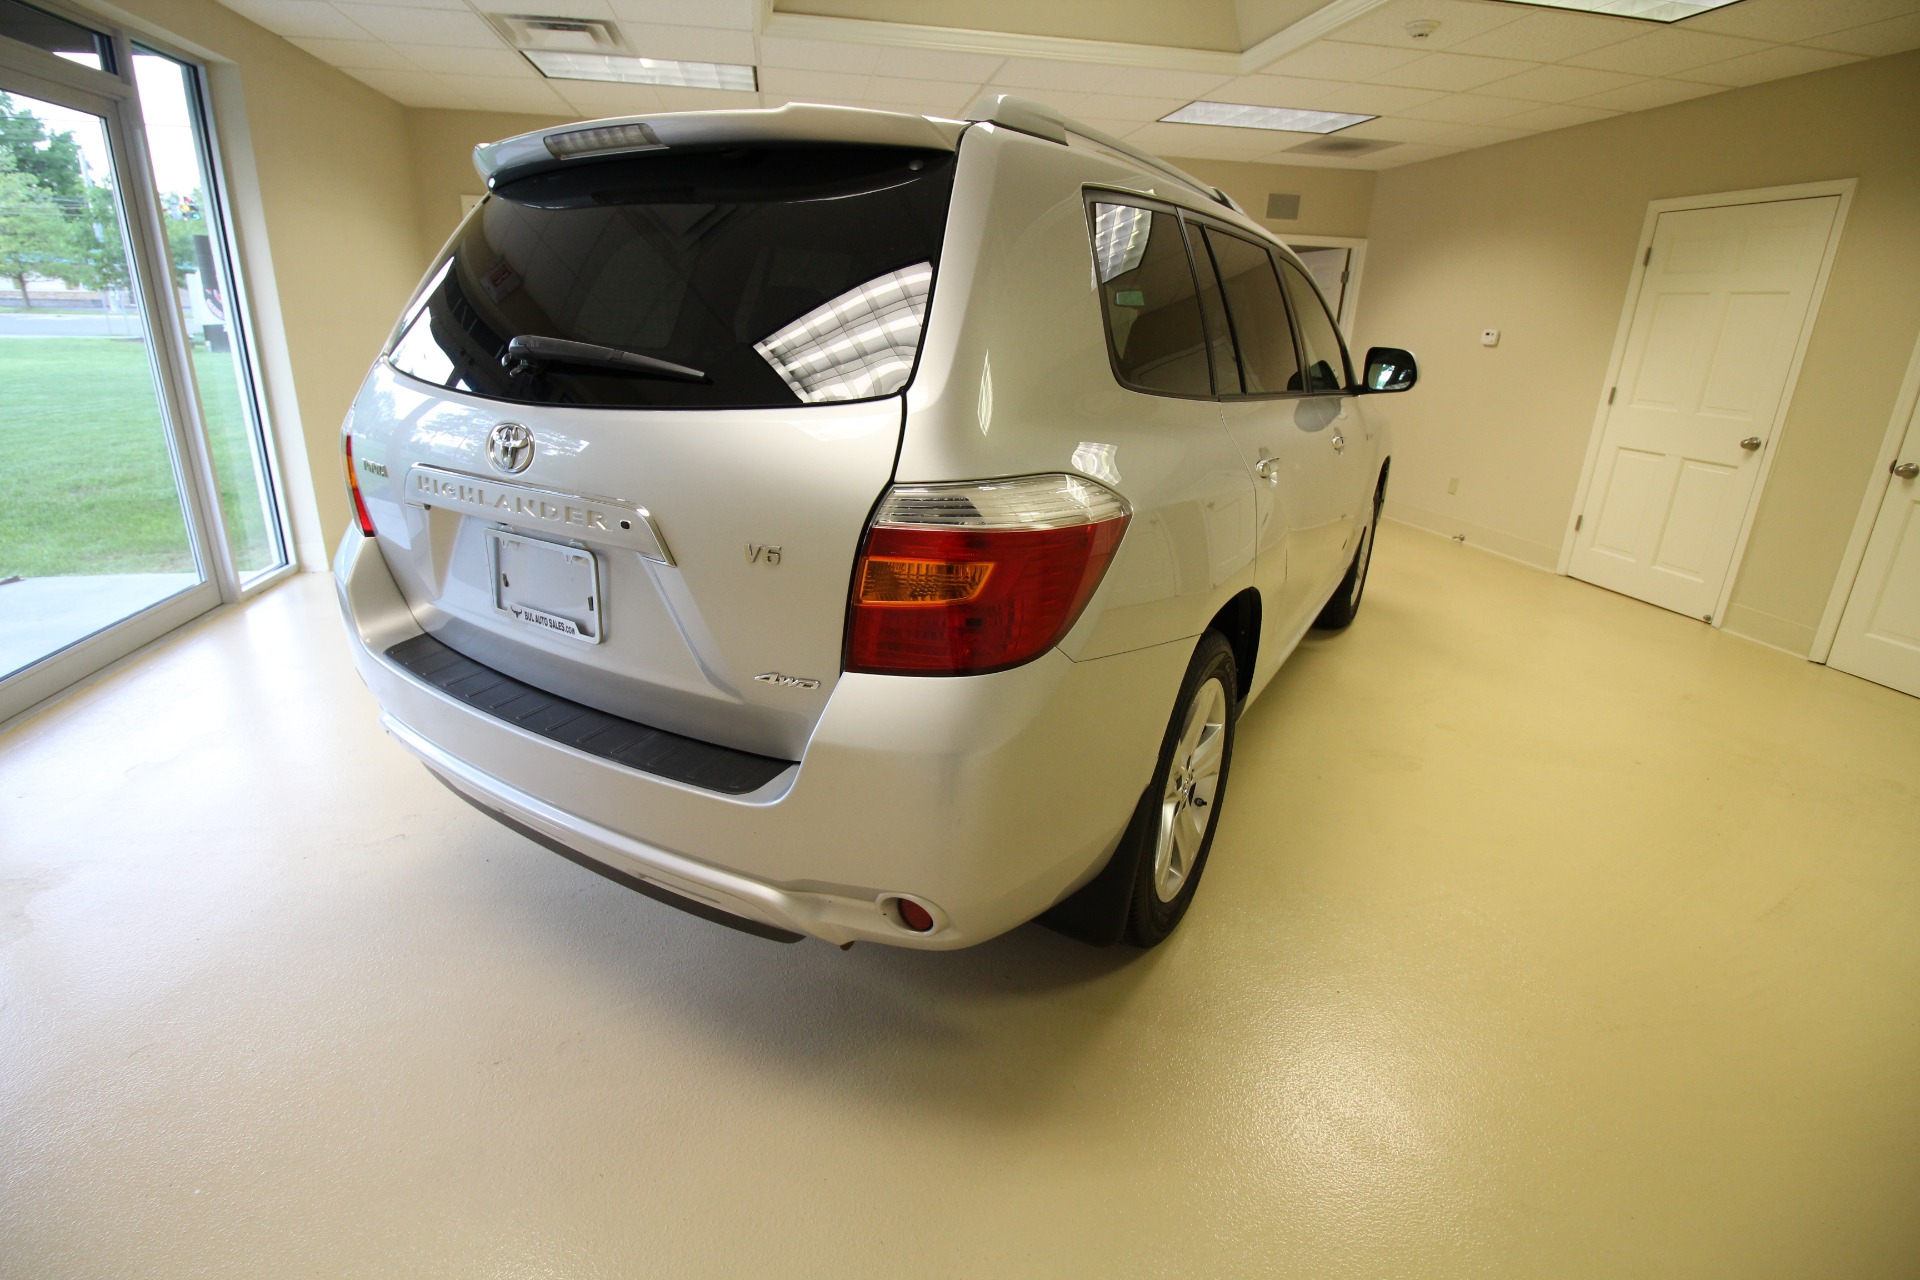 Used 2008 Toyota Highlander Limited 4WD1 OWNERLIKE NEWTV/DVDNAVIGATIONLEATHERBACK UP CAMERA | Albany, NY